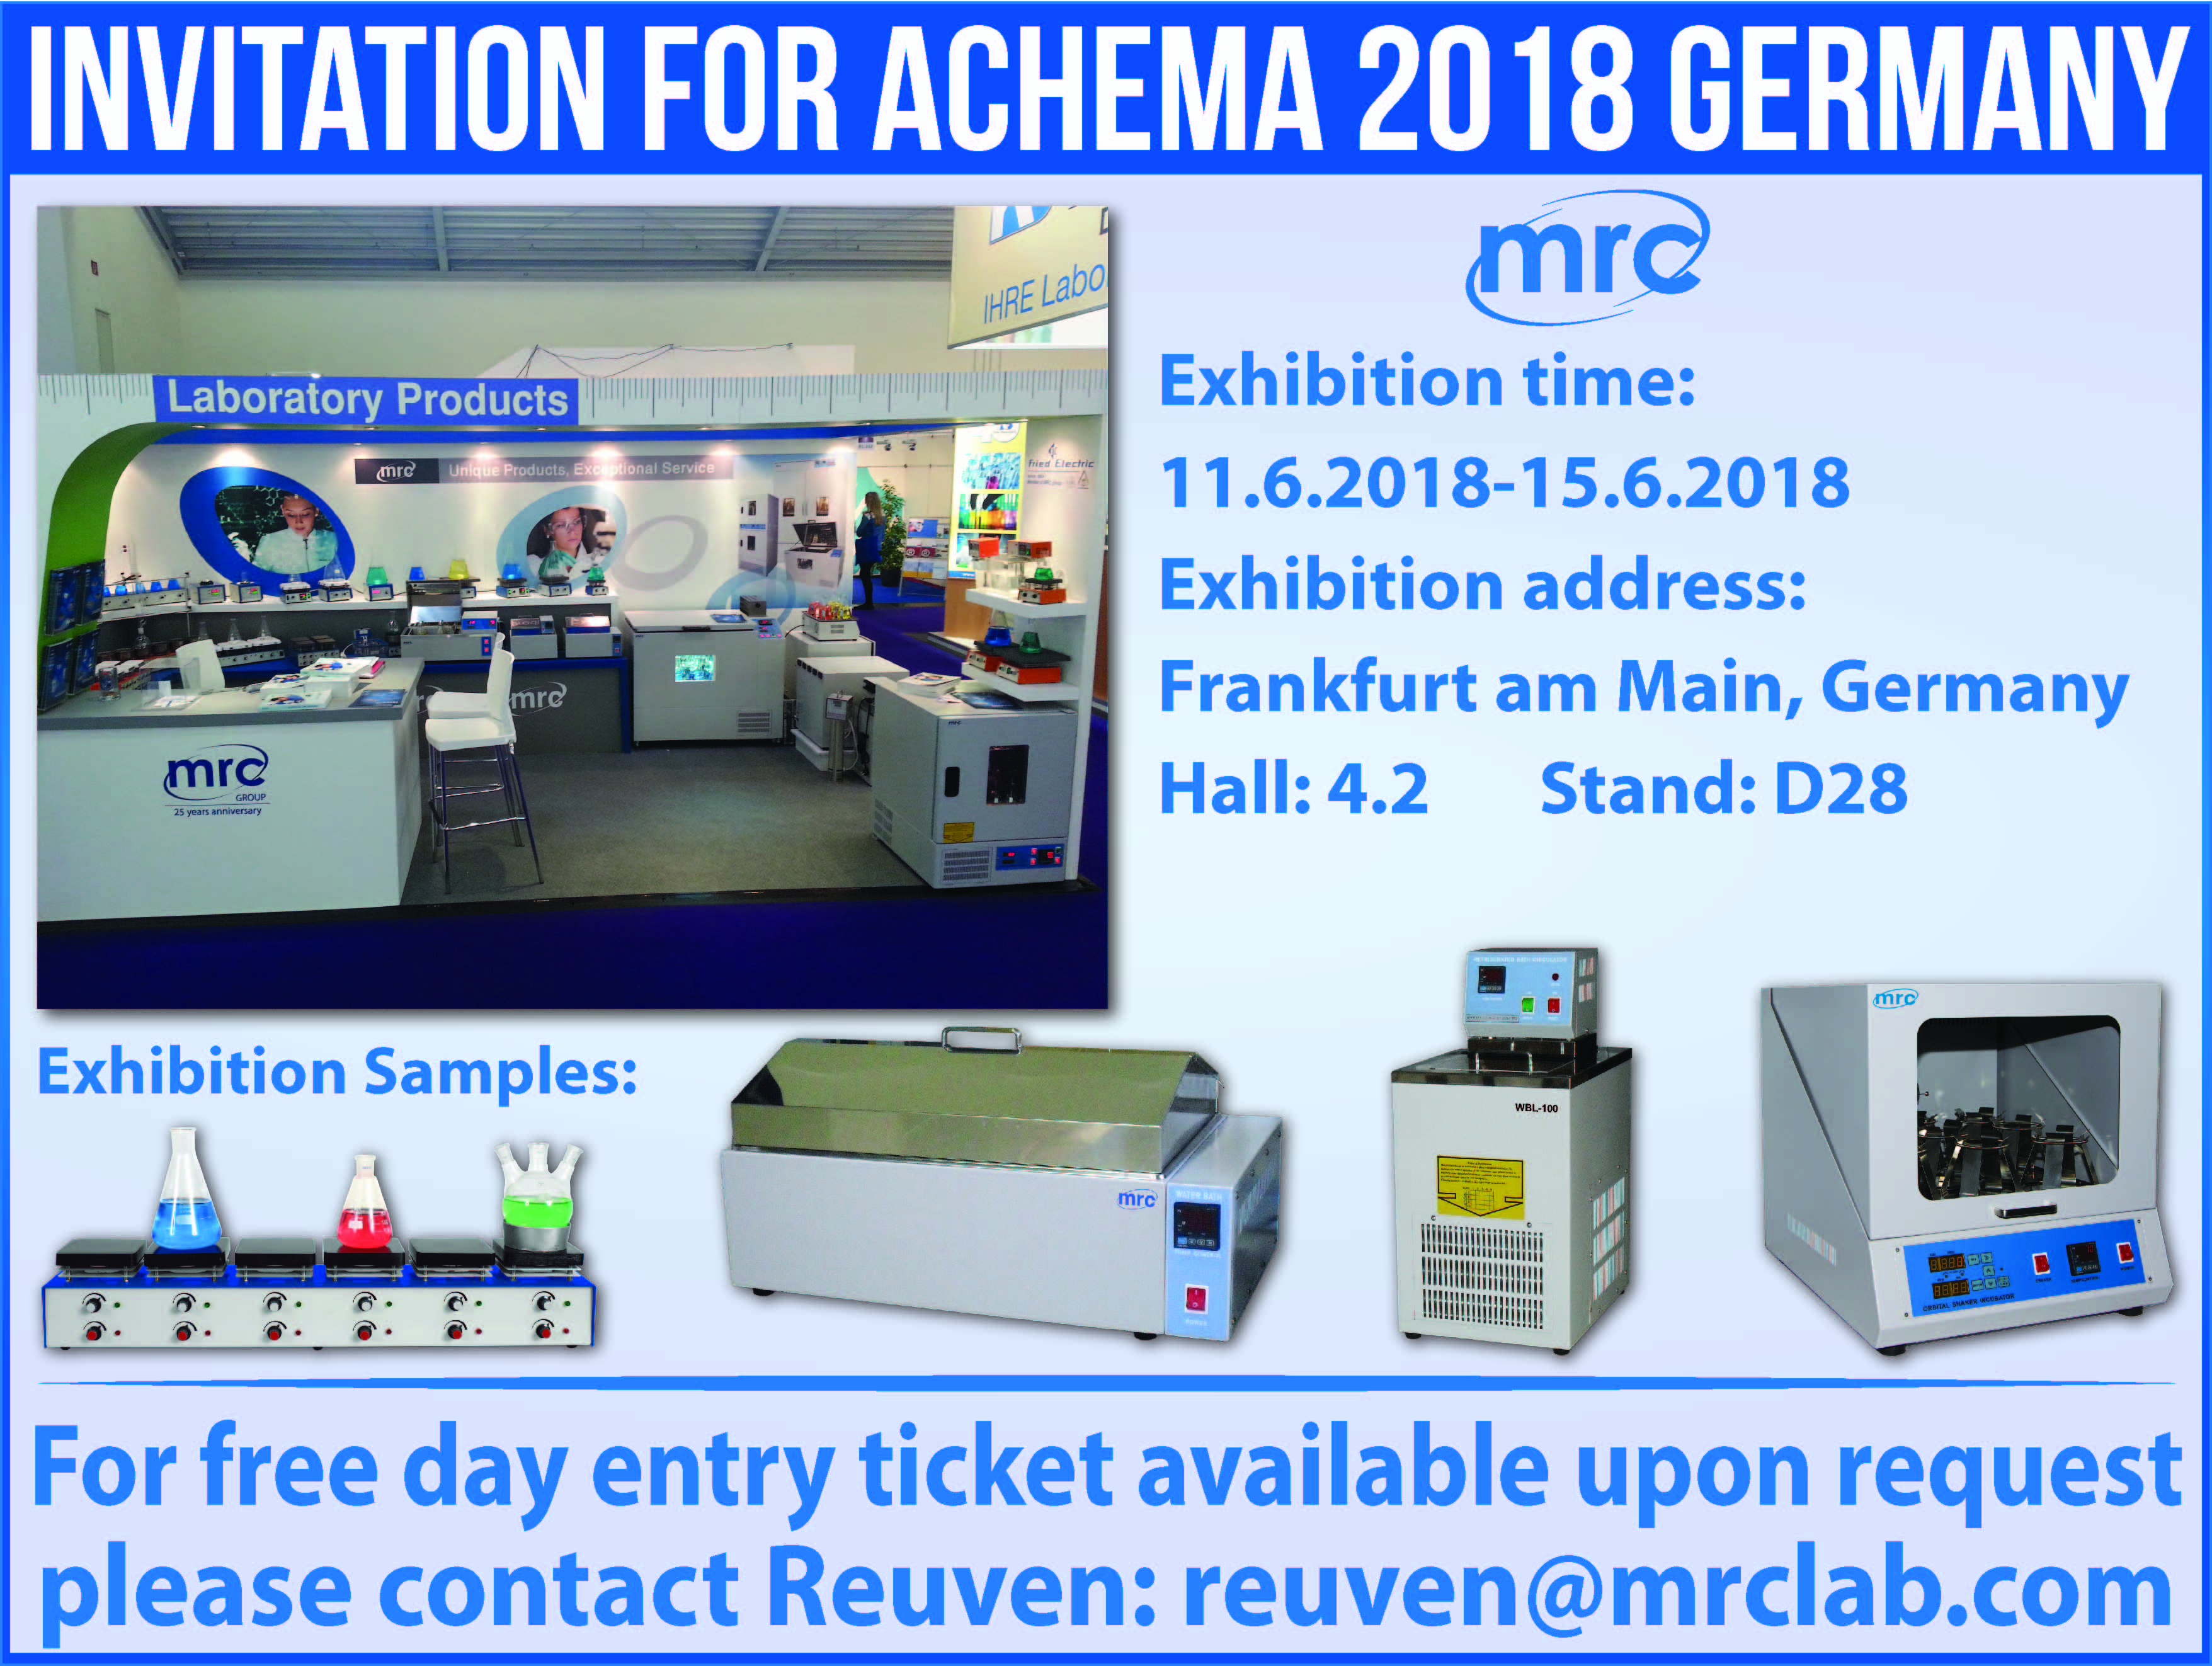 Invitation for Analytica 2018 Germany.jpg